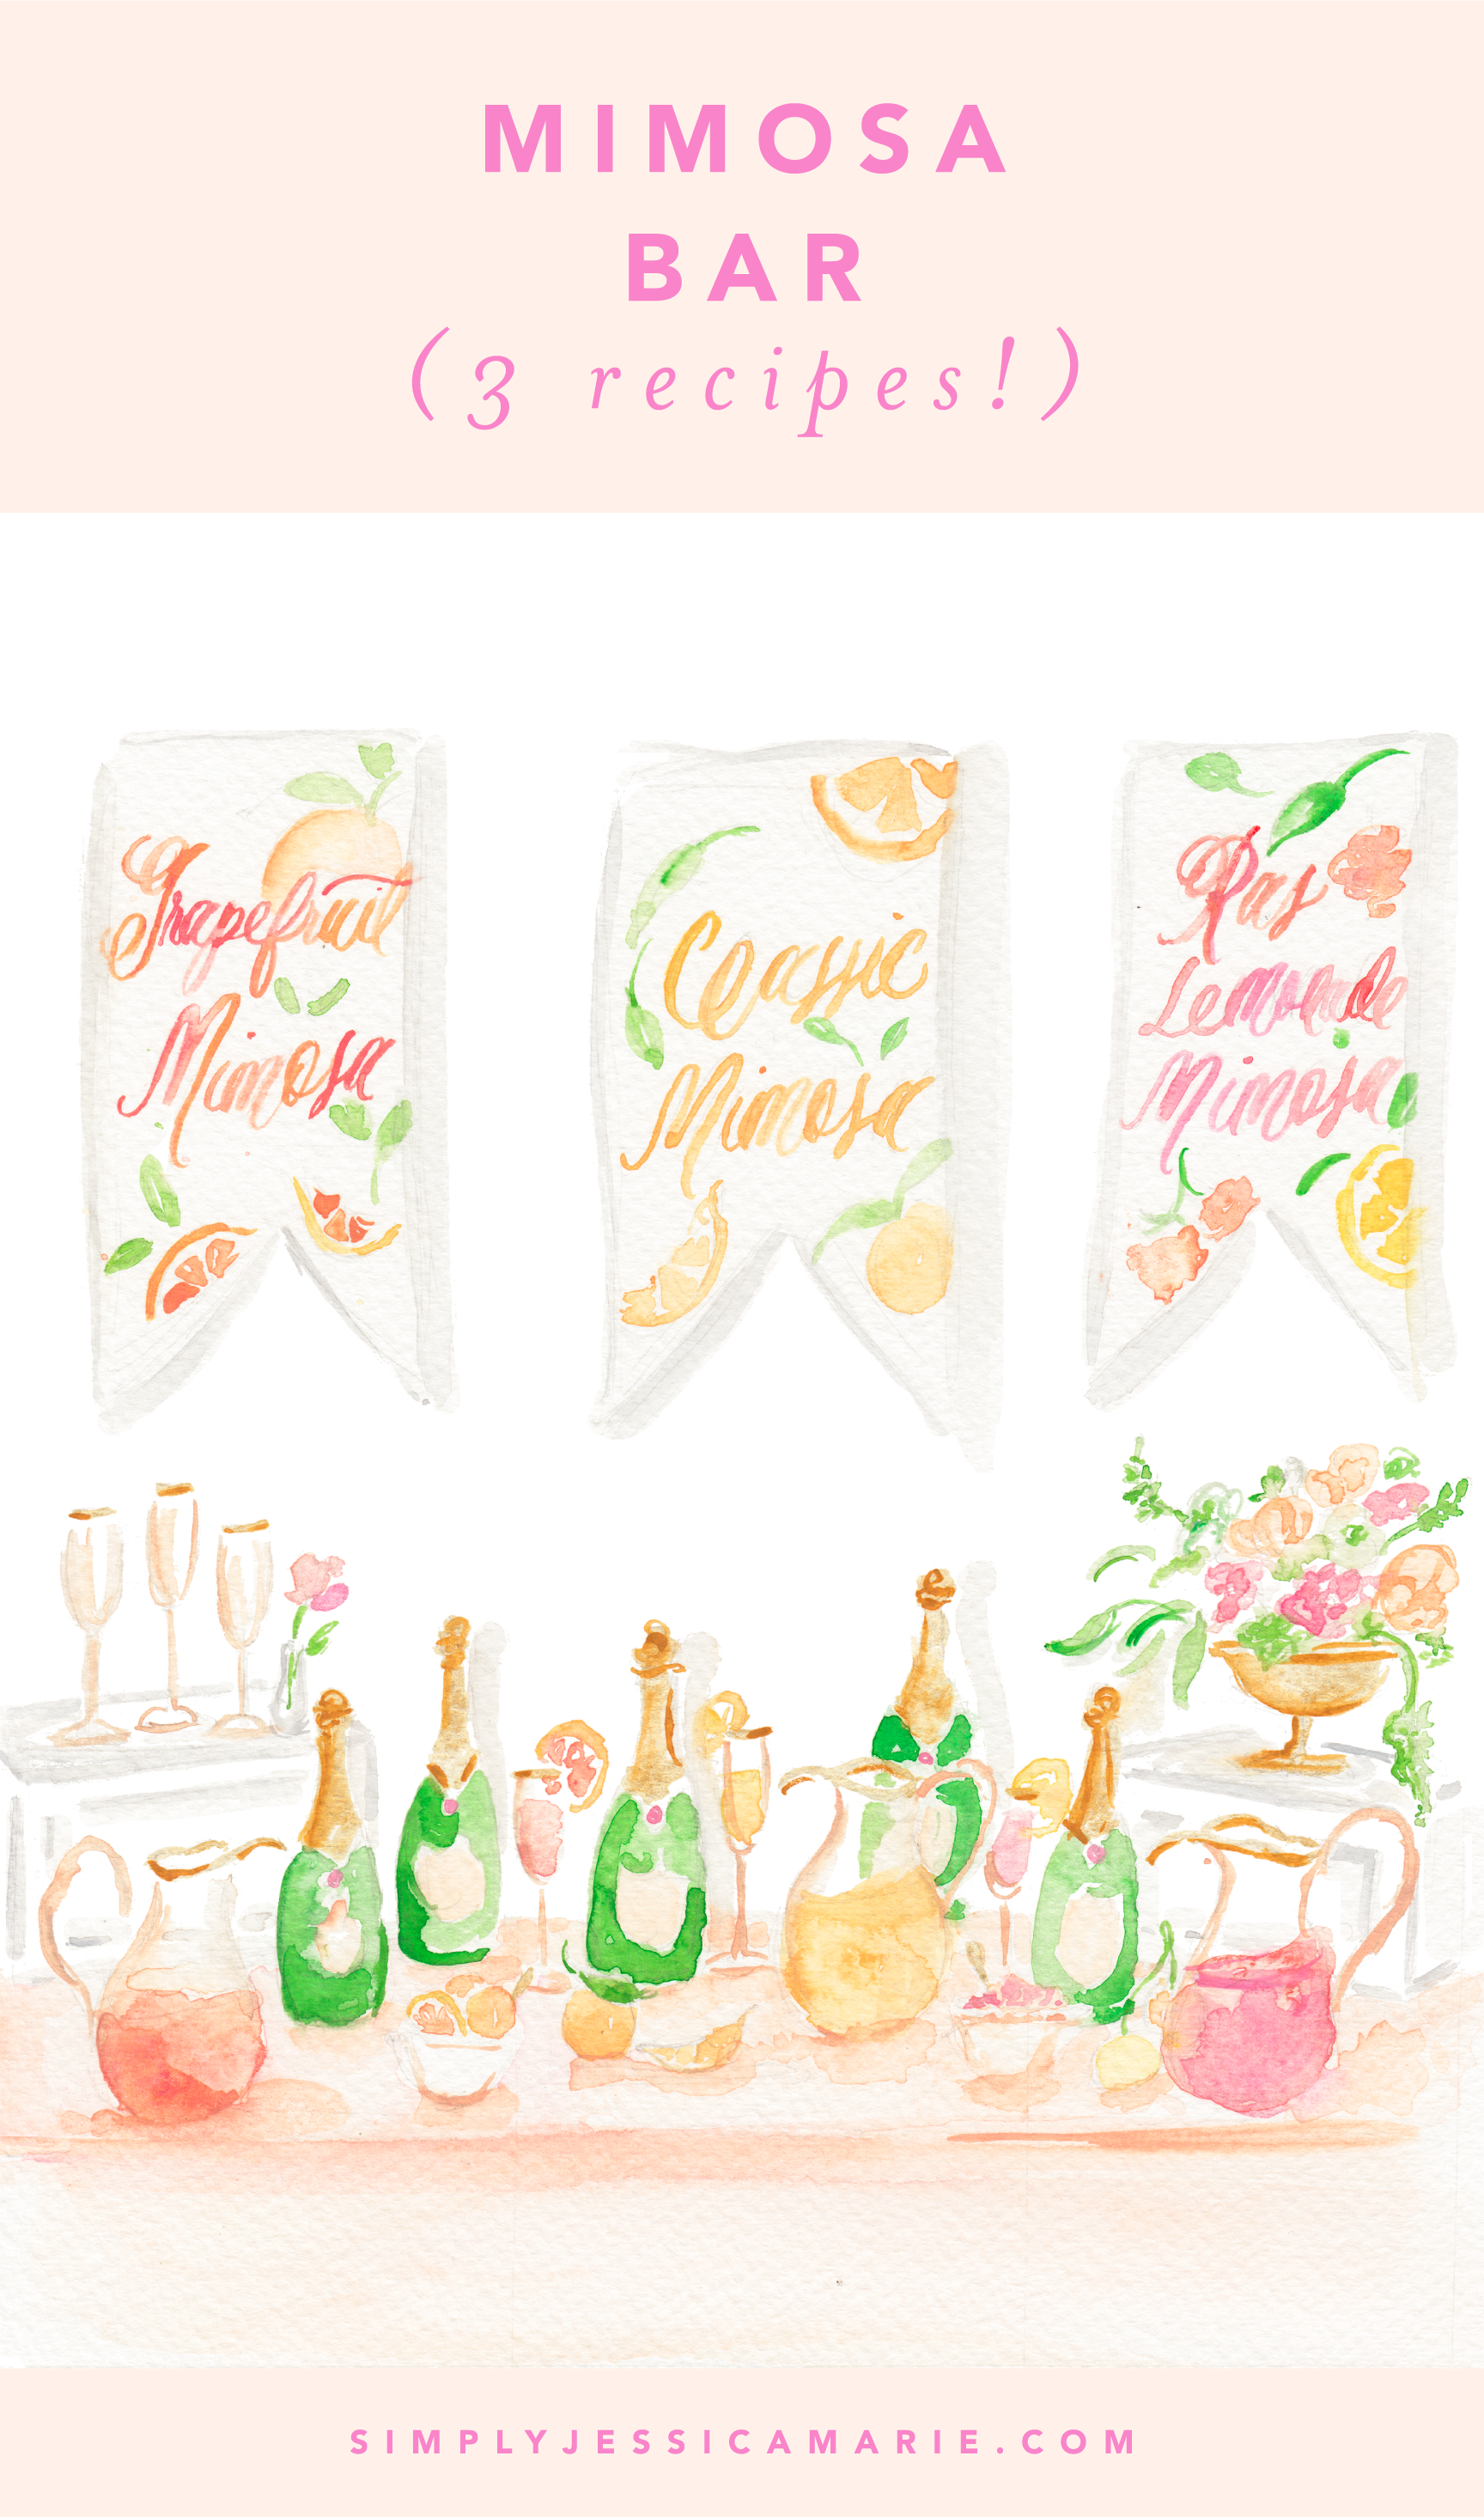 How to Make a Mimosa Bar | 3 Recipes | Watercolor Cocktail Painting by Simply Jessica Marie | SJM 2018 Cocktail Calendar